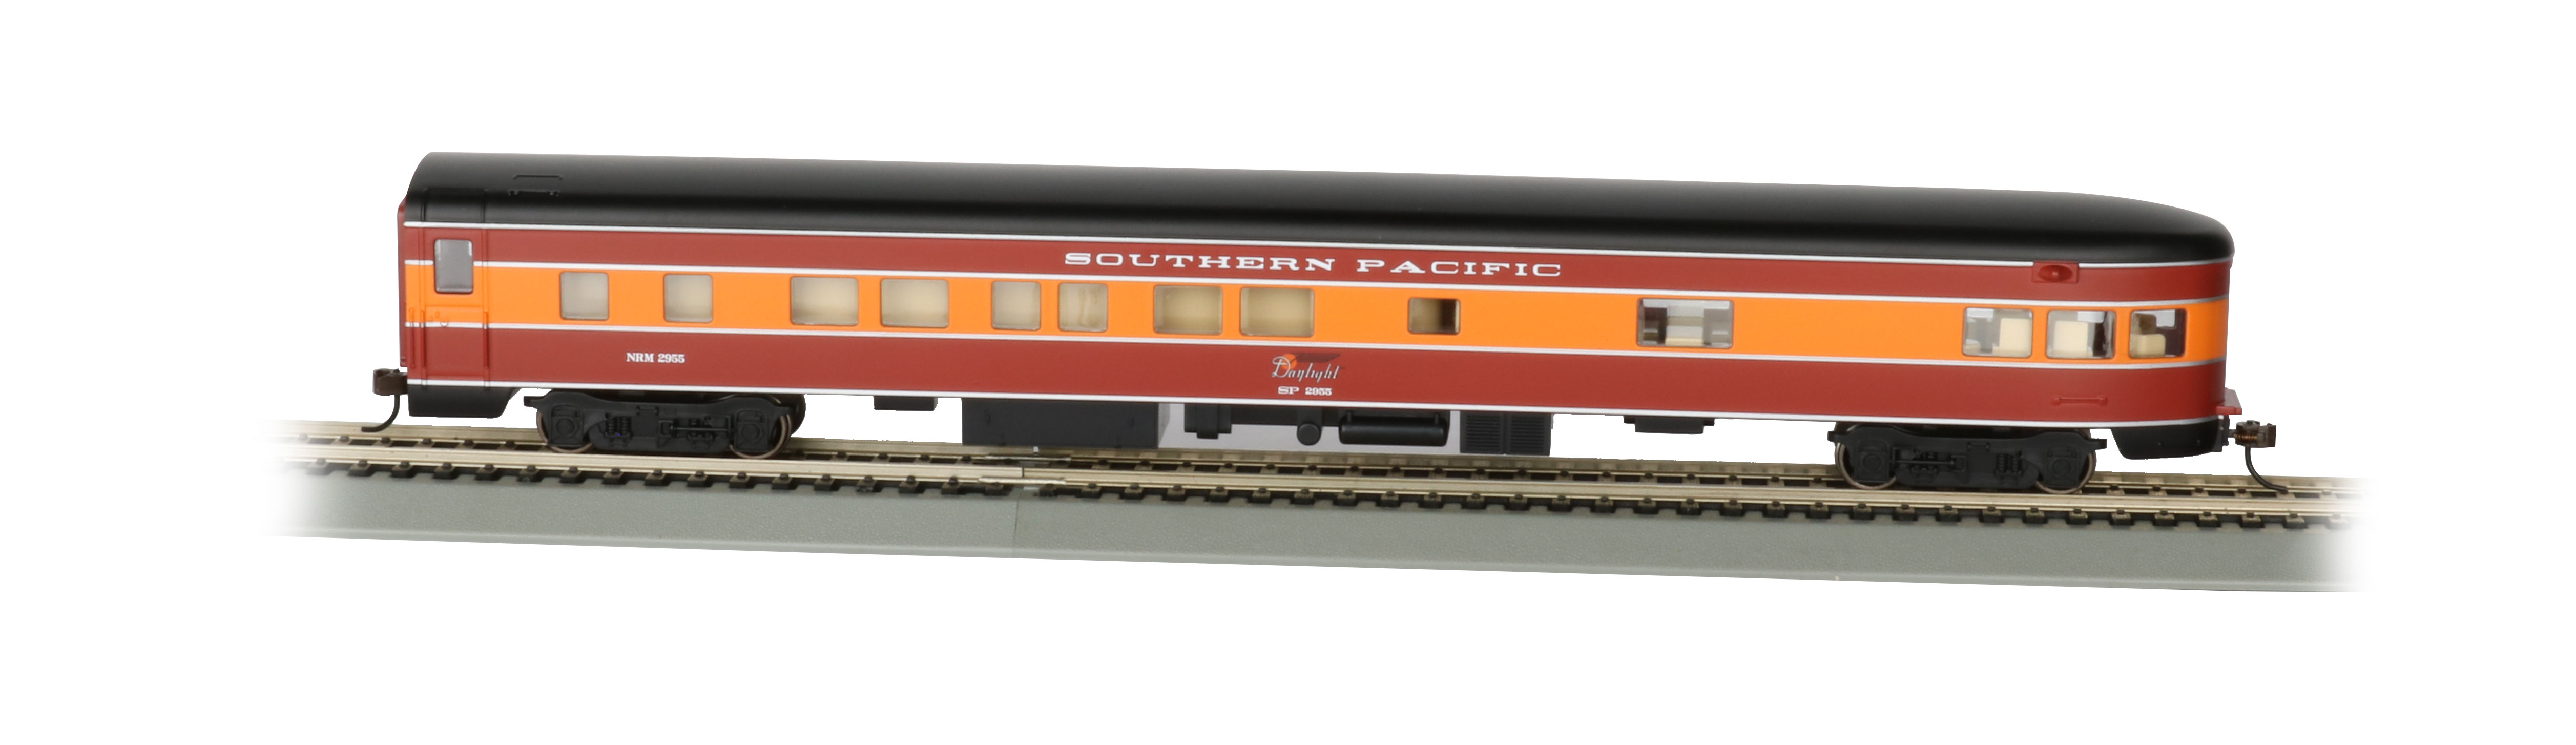 Luggage Scale Big W Li 39l Big Haulers Bachmann Trains Online Store